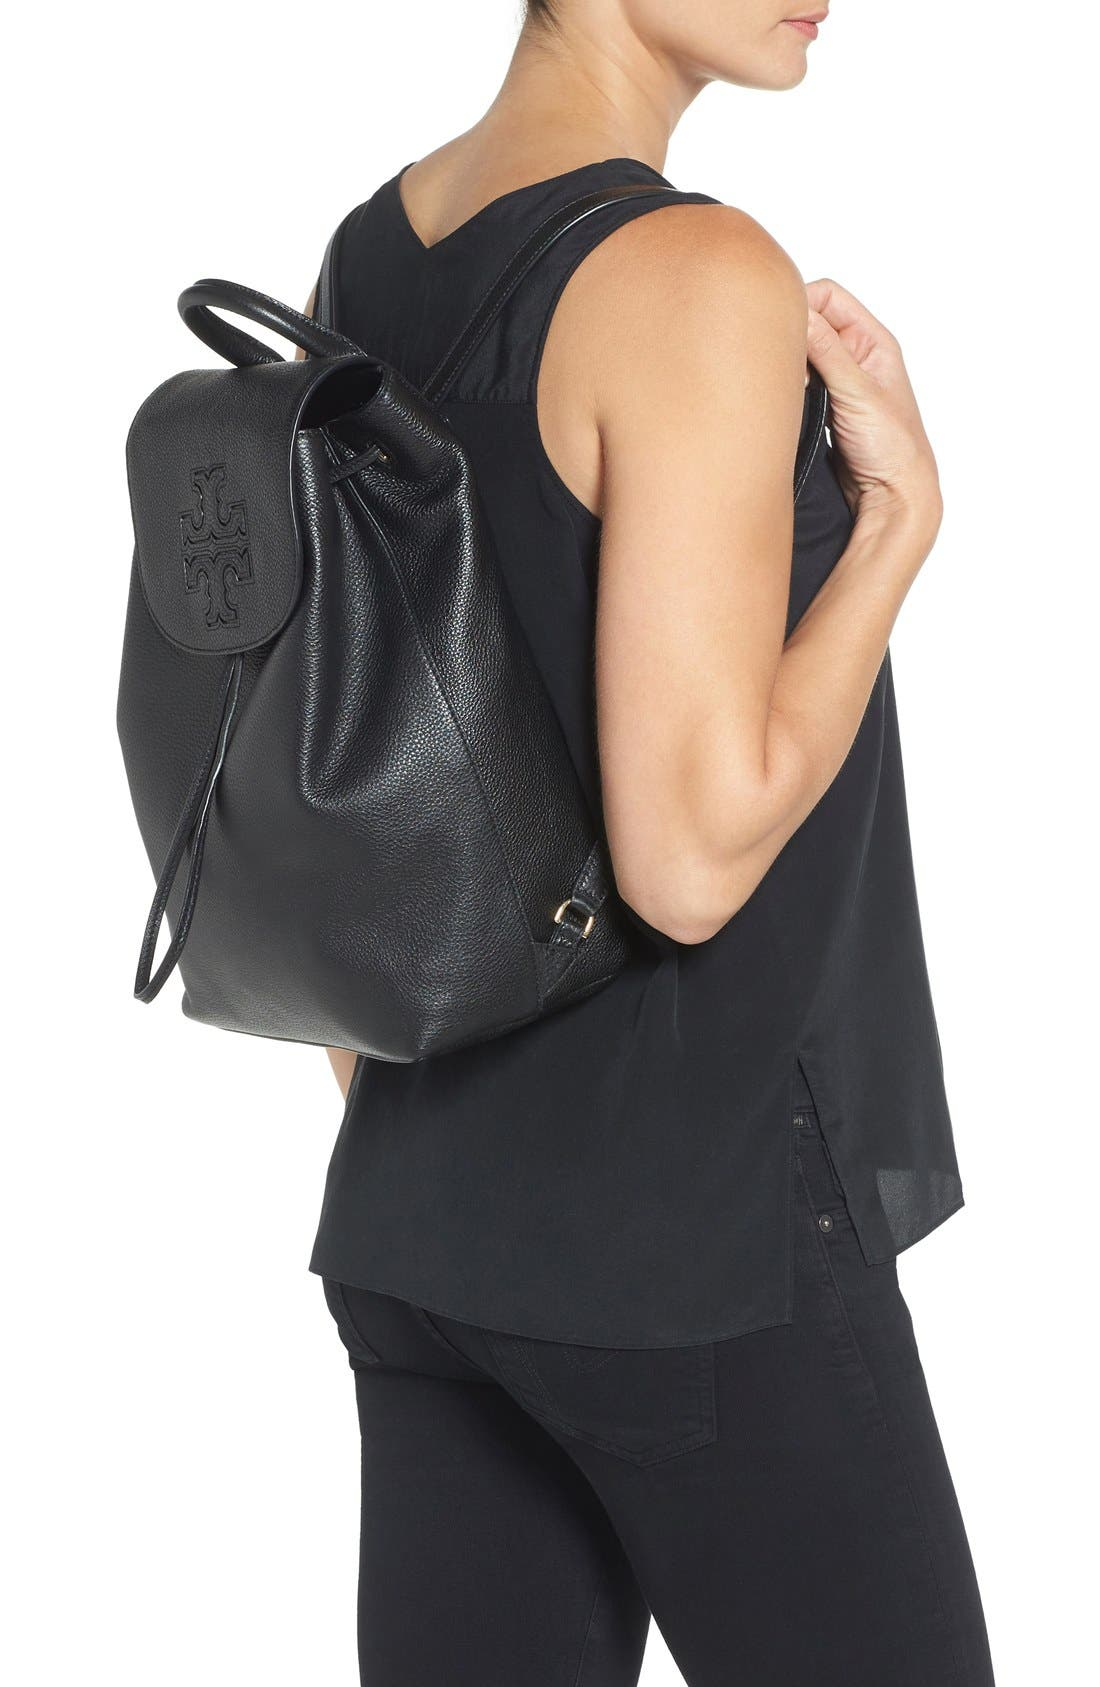 TORY BURCH,                             'Harper' Leather Backpack,                             Alternate thumbnail 2, color,                             012